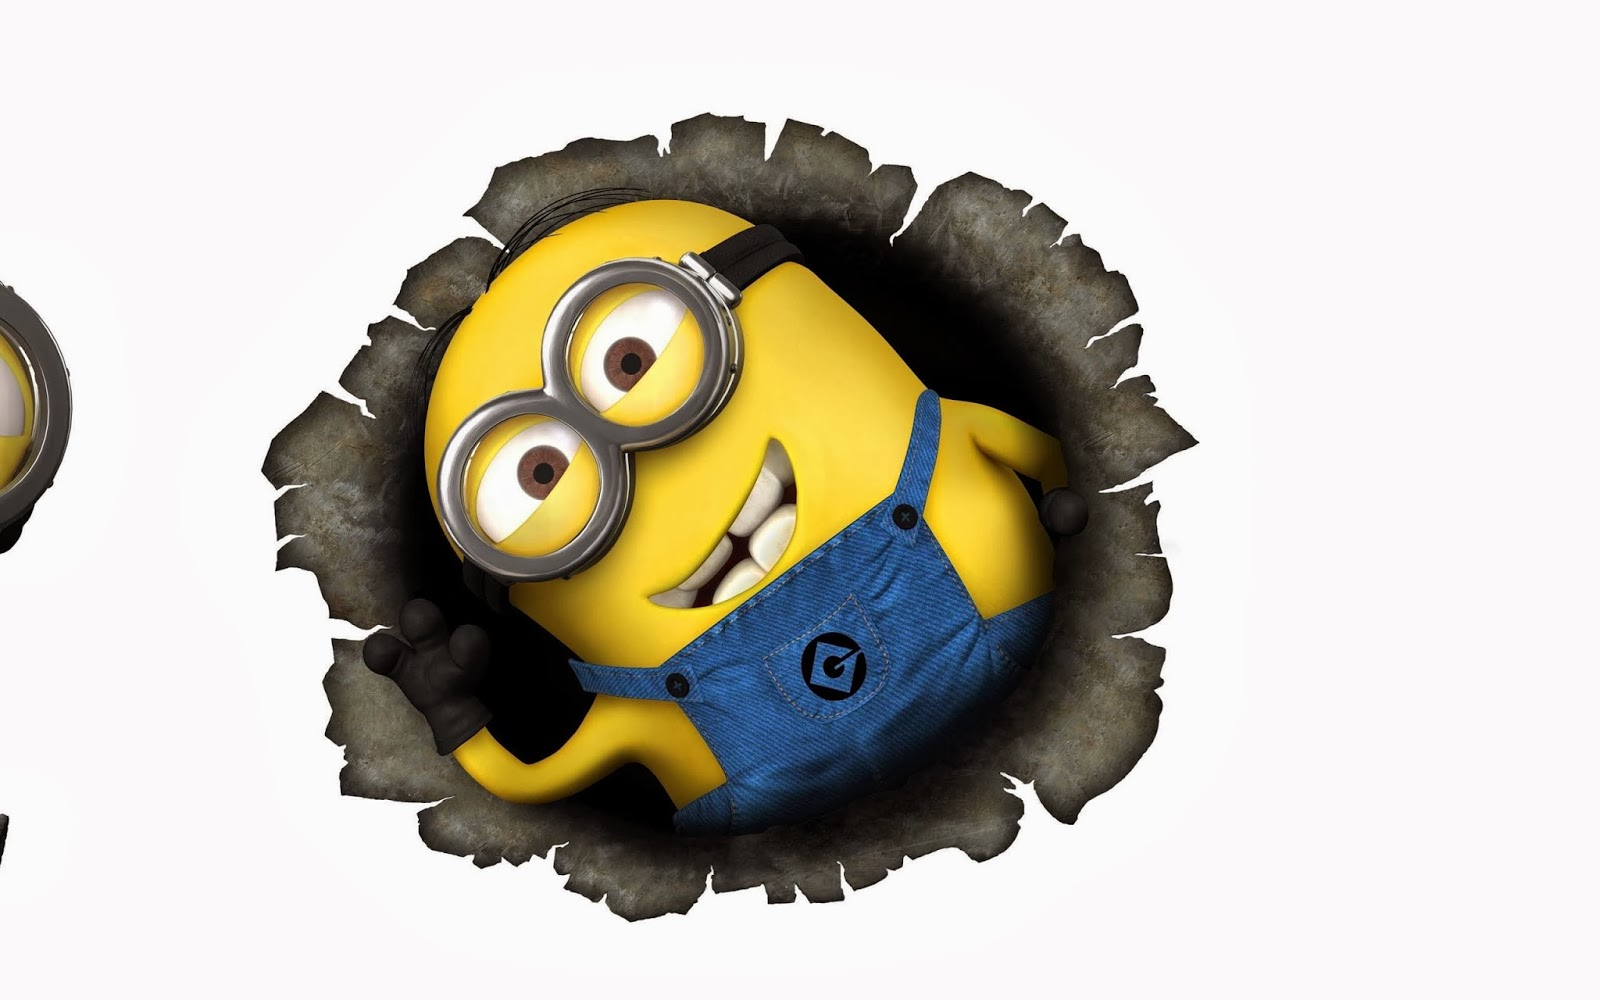 free minions wallpapers for desktop - wallpapersafari